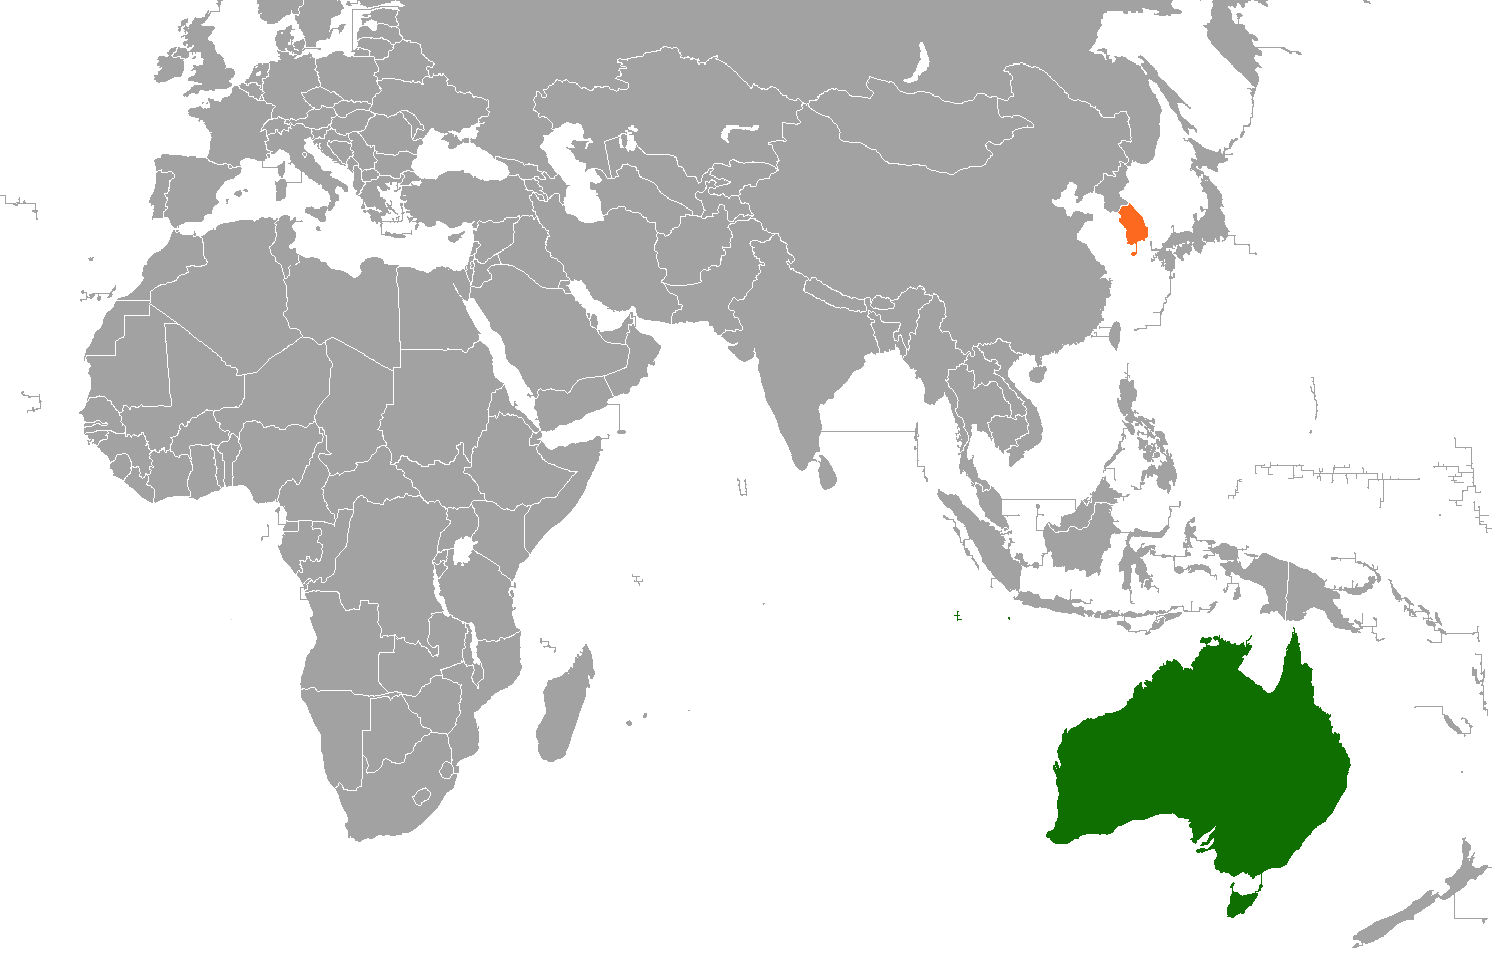 Australia–South Korea relations - Wikipedia on europe map, seoul map, asia map, united states map, euro countries map, japan map, iran map, formosa map, korean peninsula map, rwanda map, camp humphreys map, usa map, wwii map, persia map, russia map, china map, ireland map, hong kong map, korean war map,